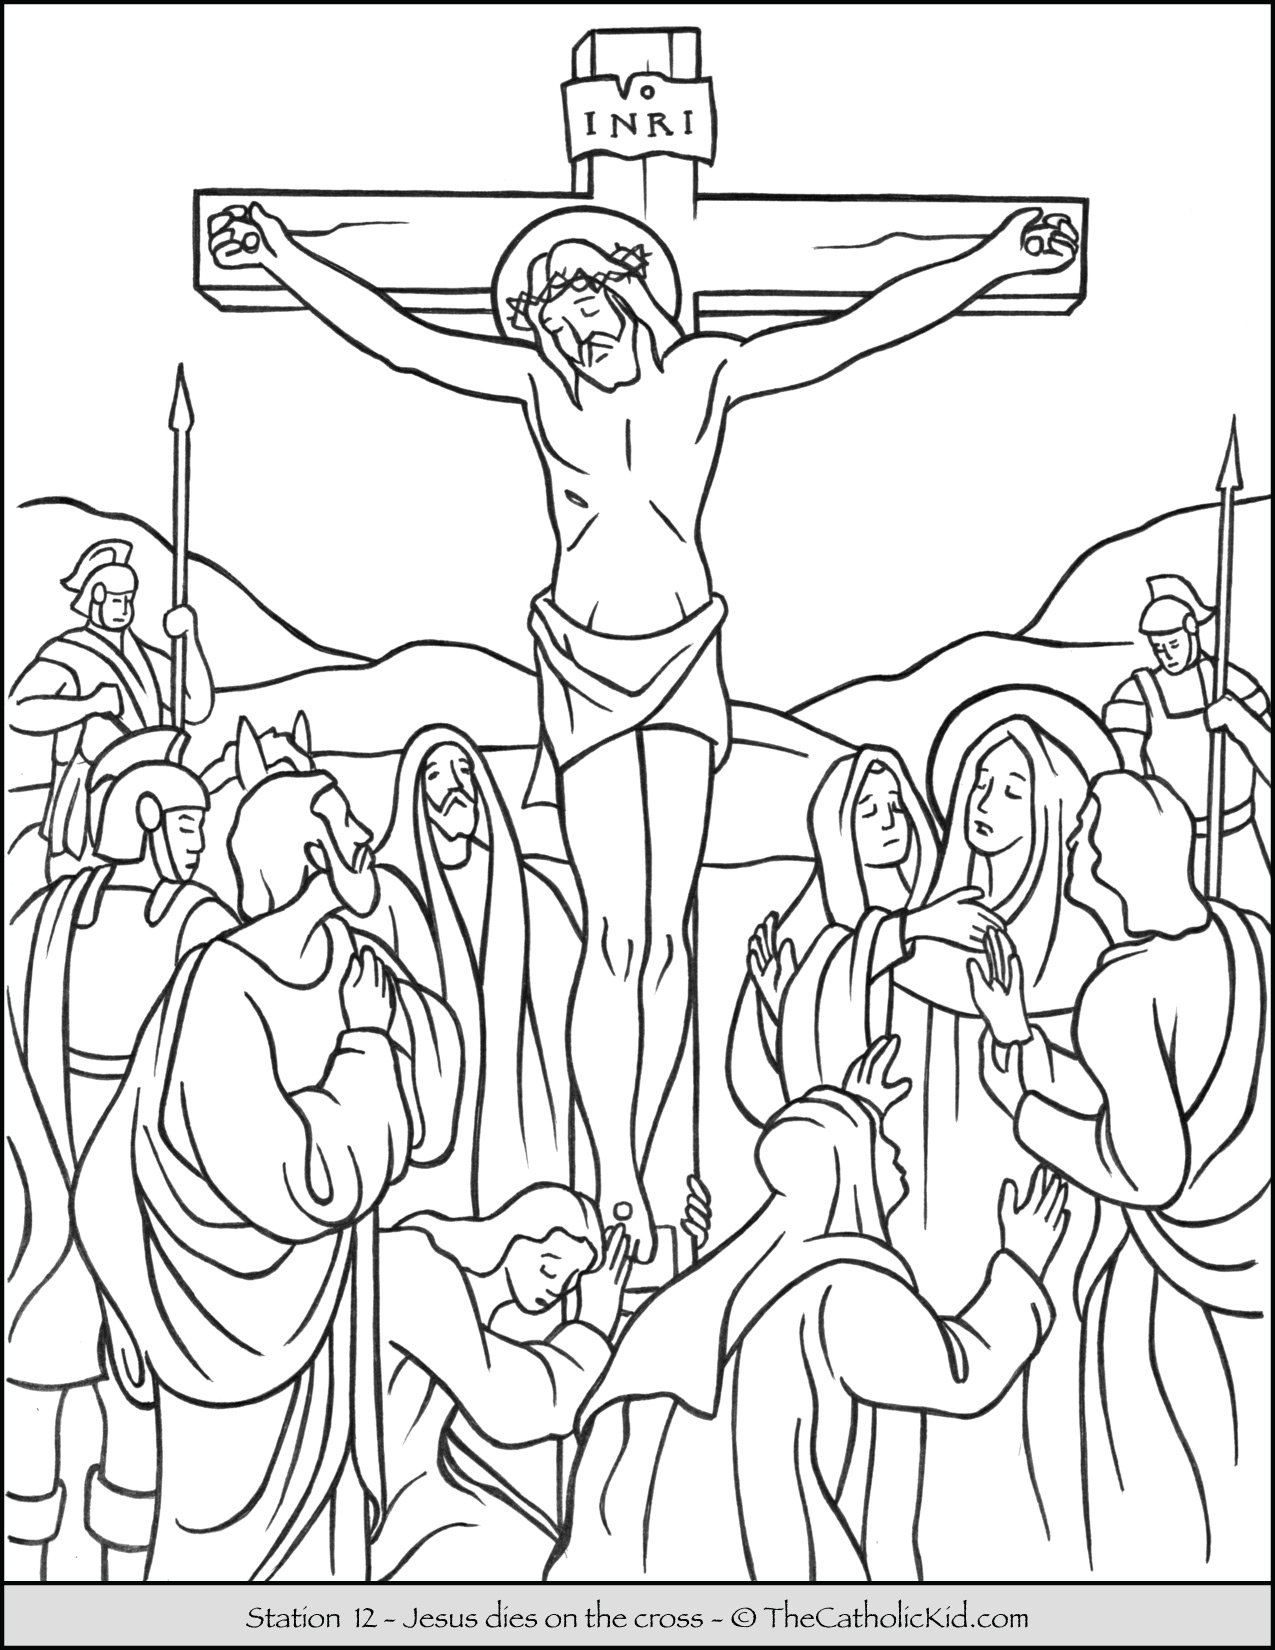 Stations of the Cross Catholic Coloring Pages for Kids 12